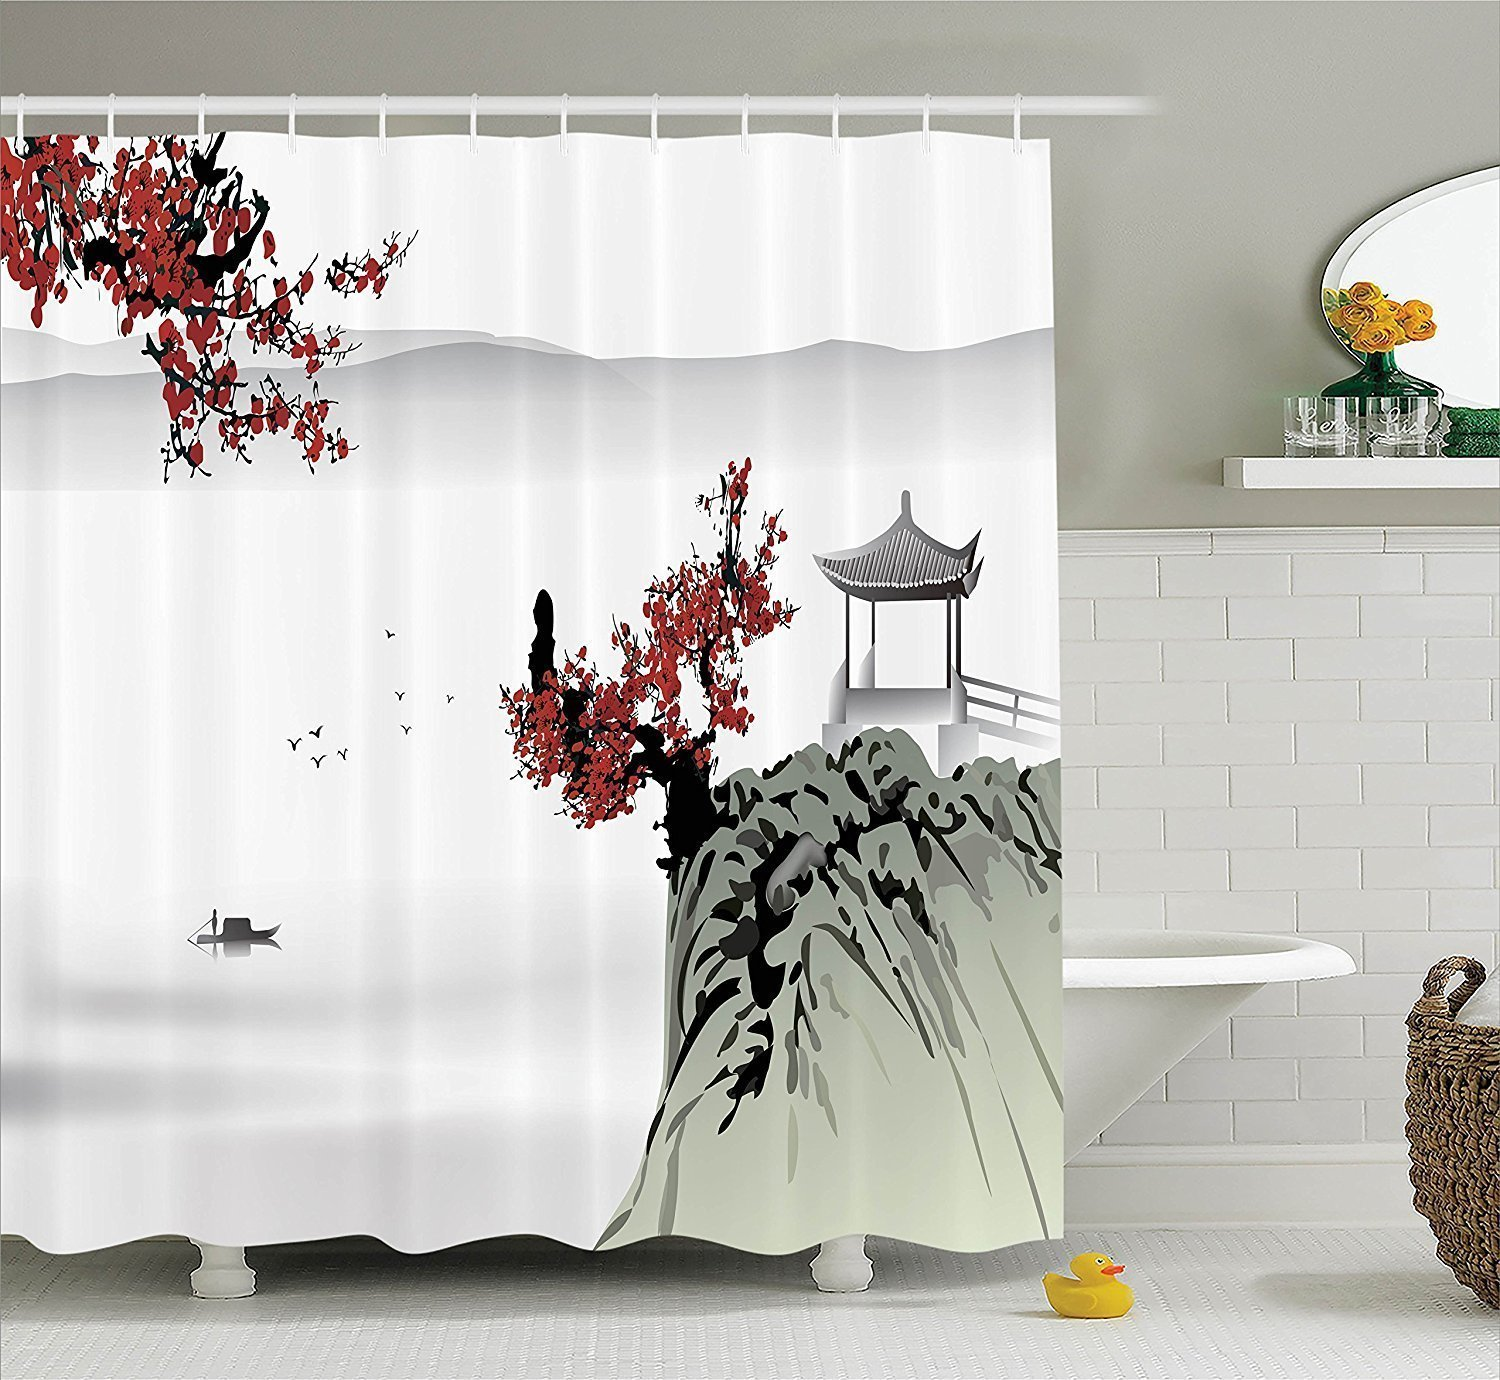 Superbe Get Quotations · Asian Decor Shower Curtain Set By YOUHOME, Asian River  Scenery With Cherry Blossoms And Boat